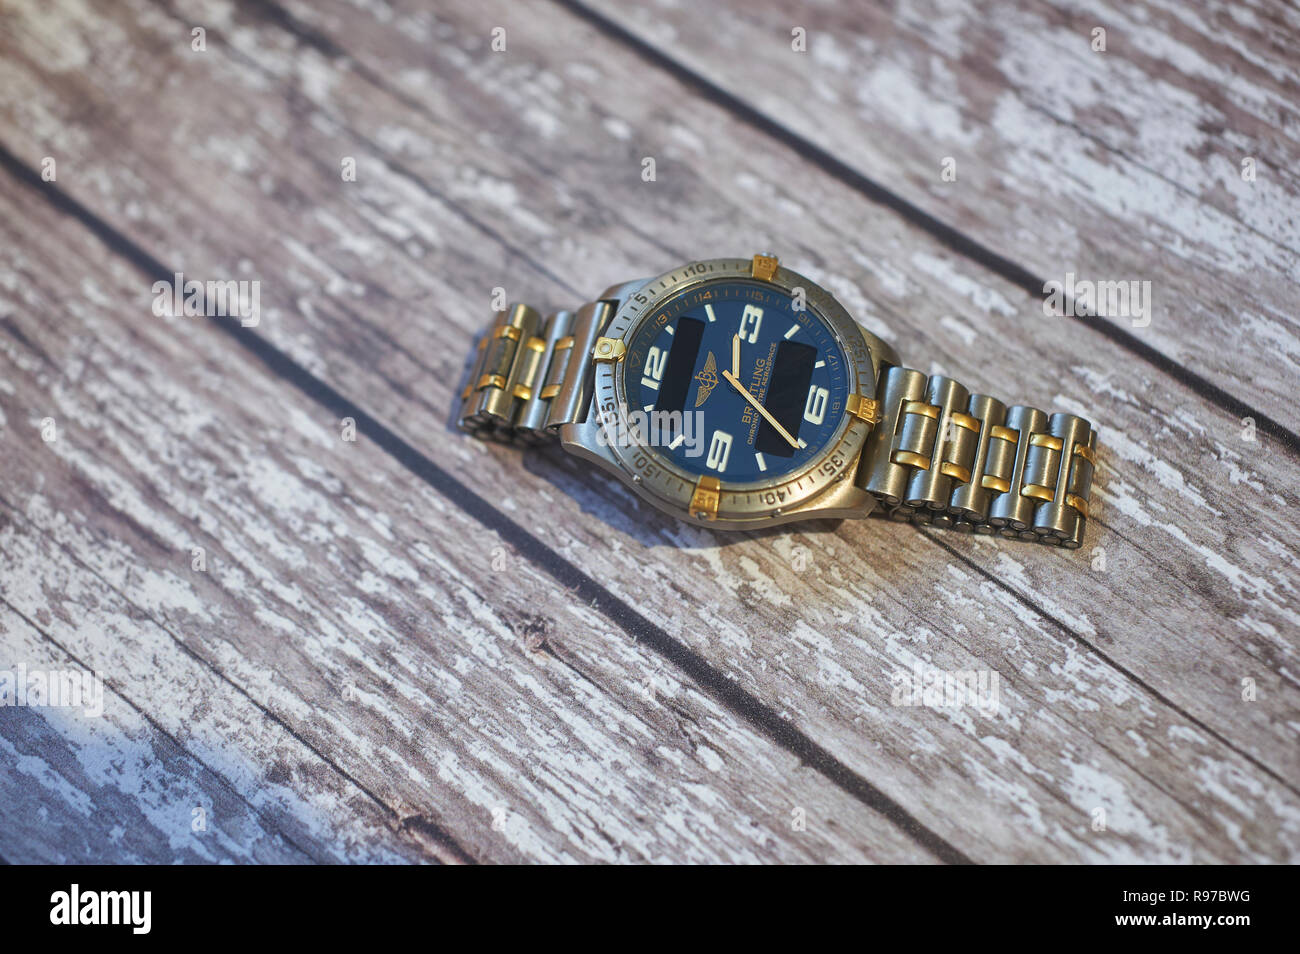 Breitling Aerospace aviation chronograph on a wooden table top - Stock Image